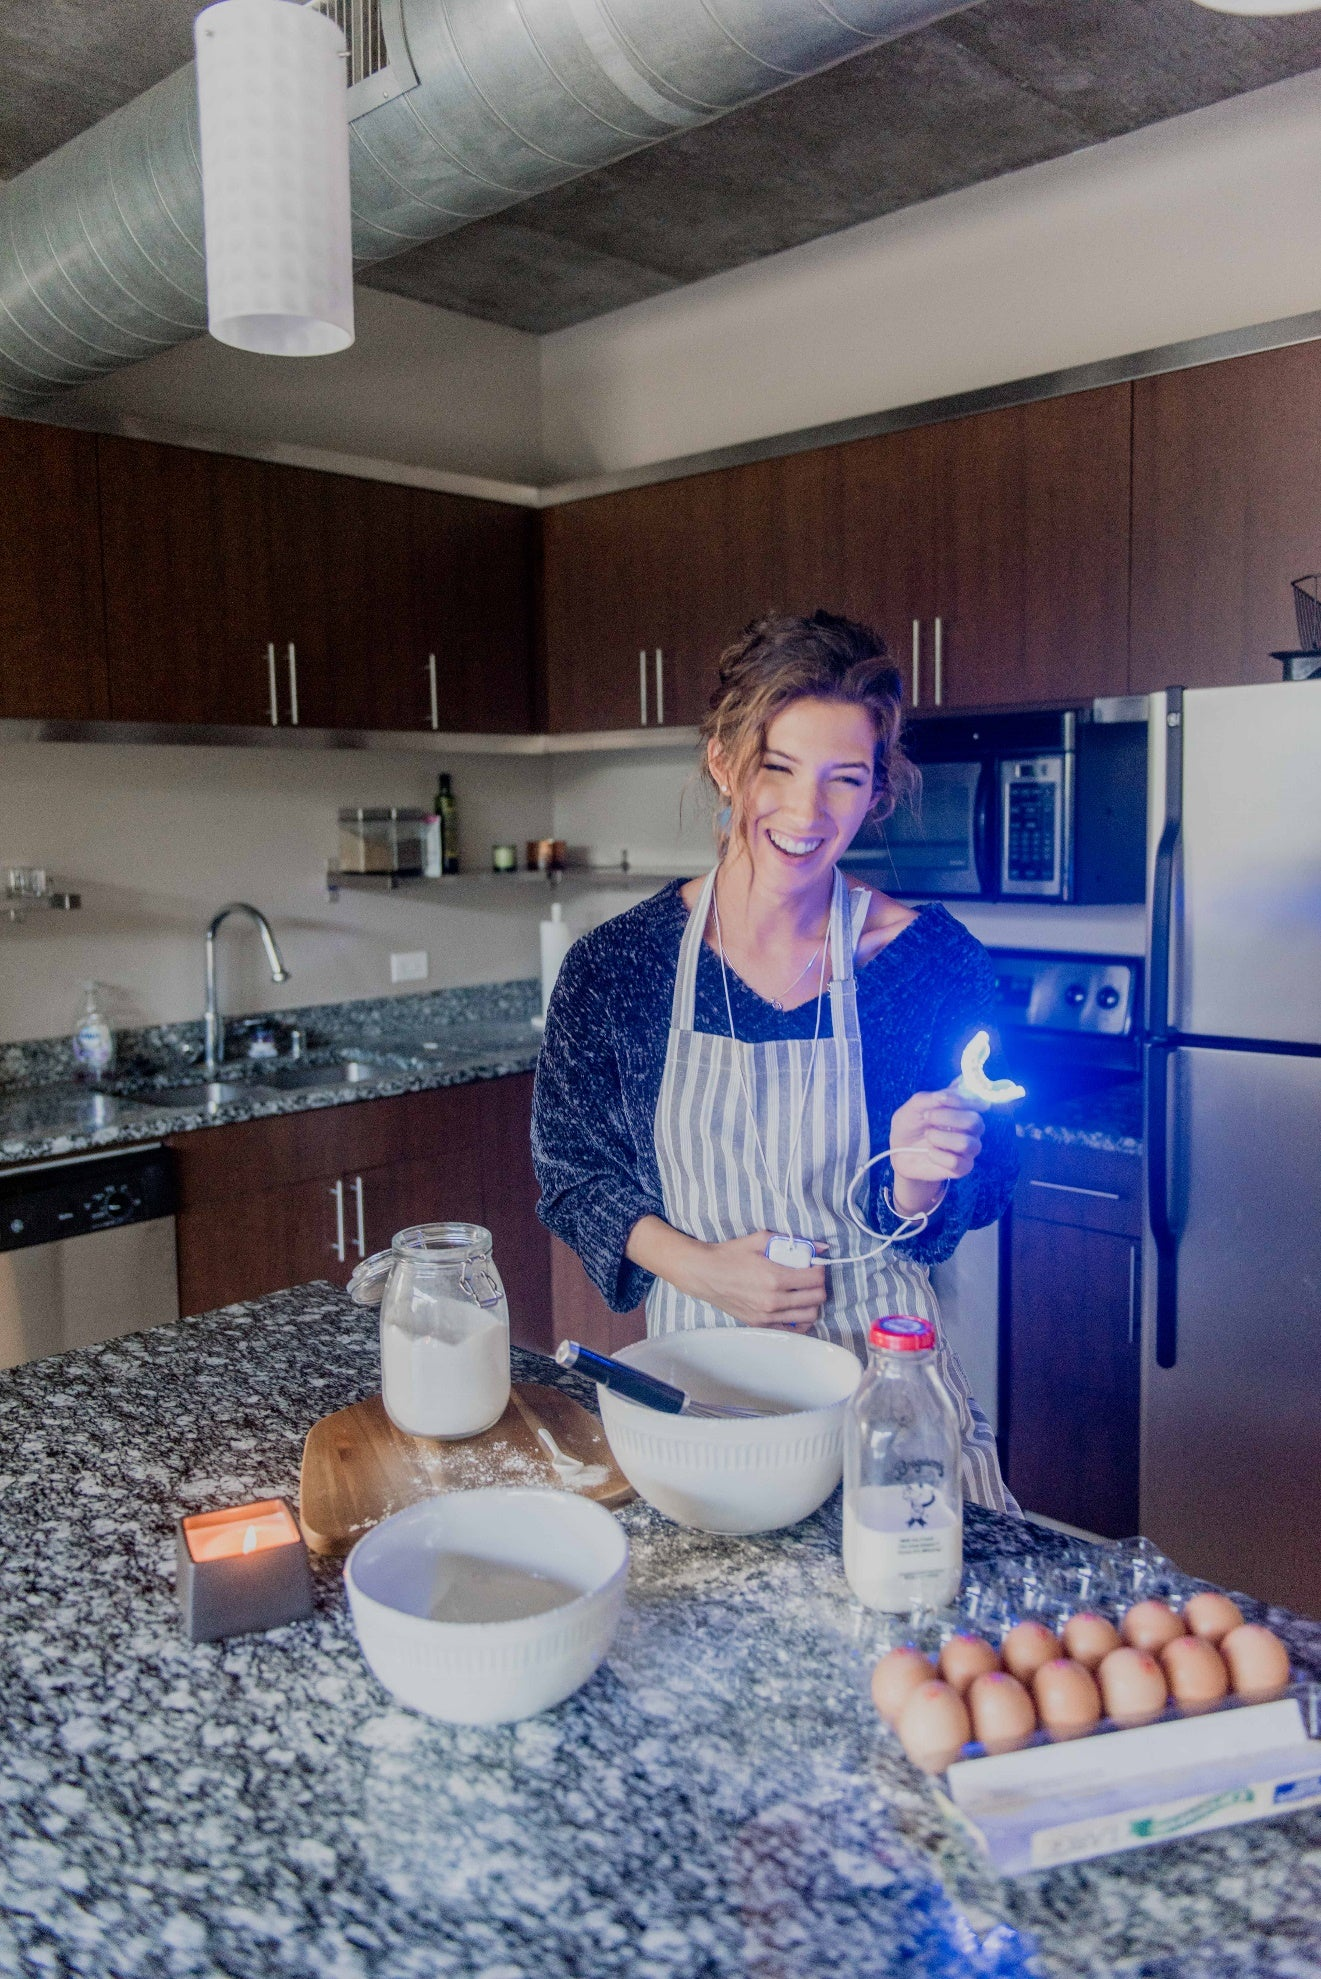 Description: A person cooking in a kitchen Description automatically generated with medium confidence